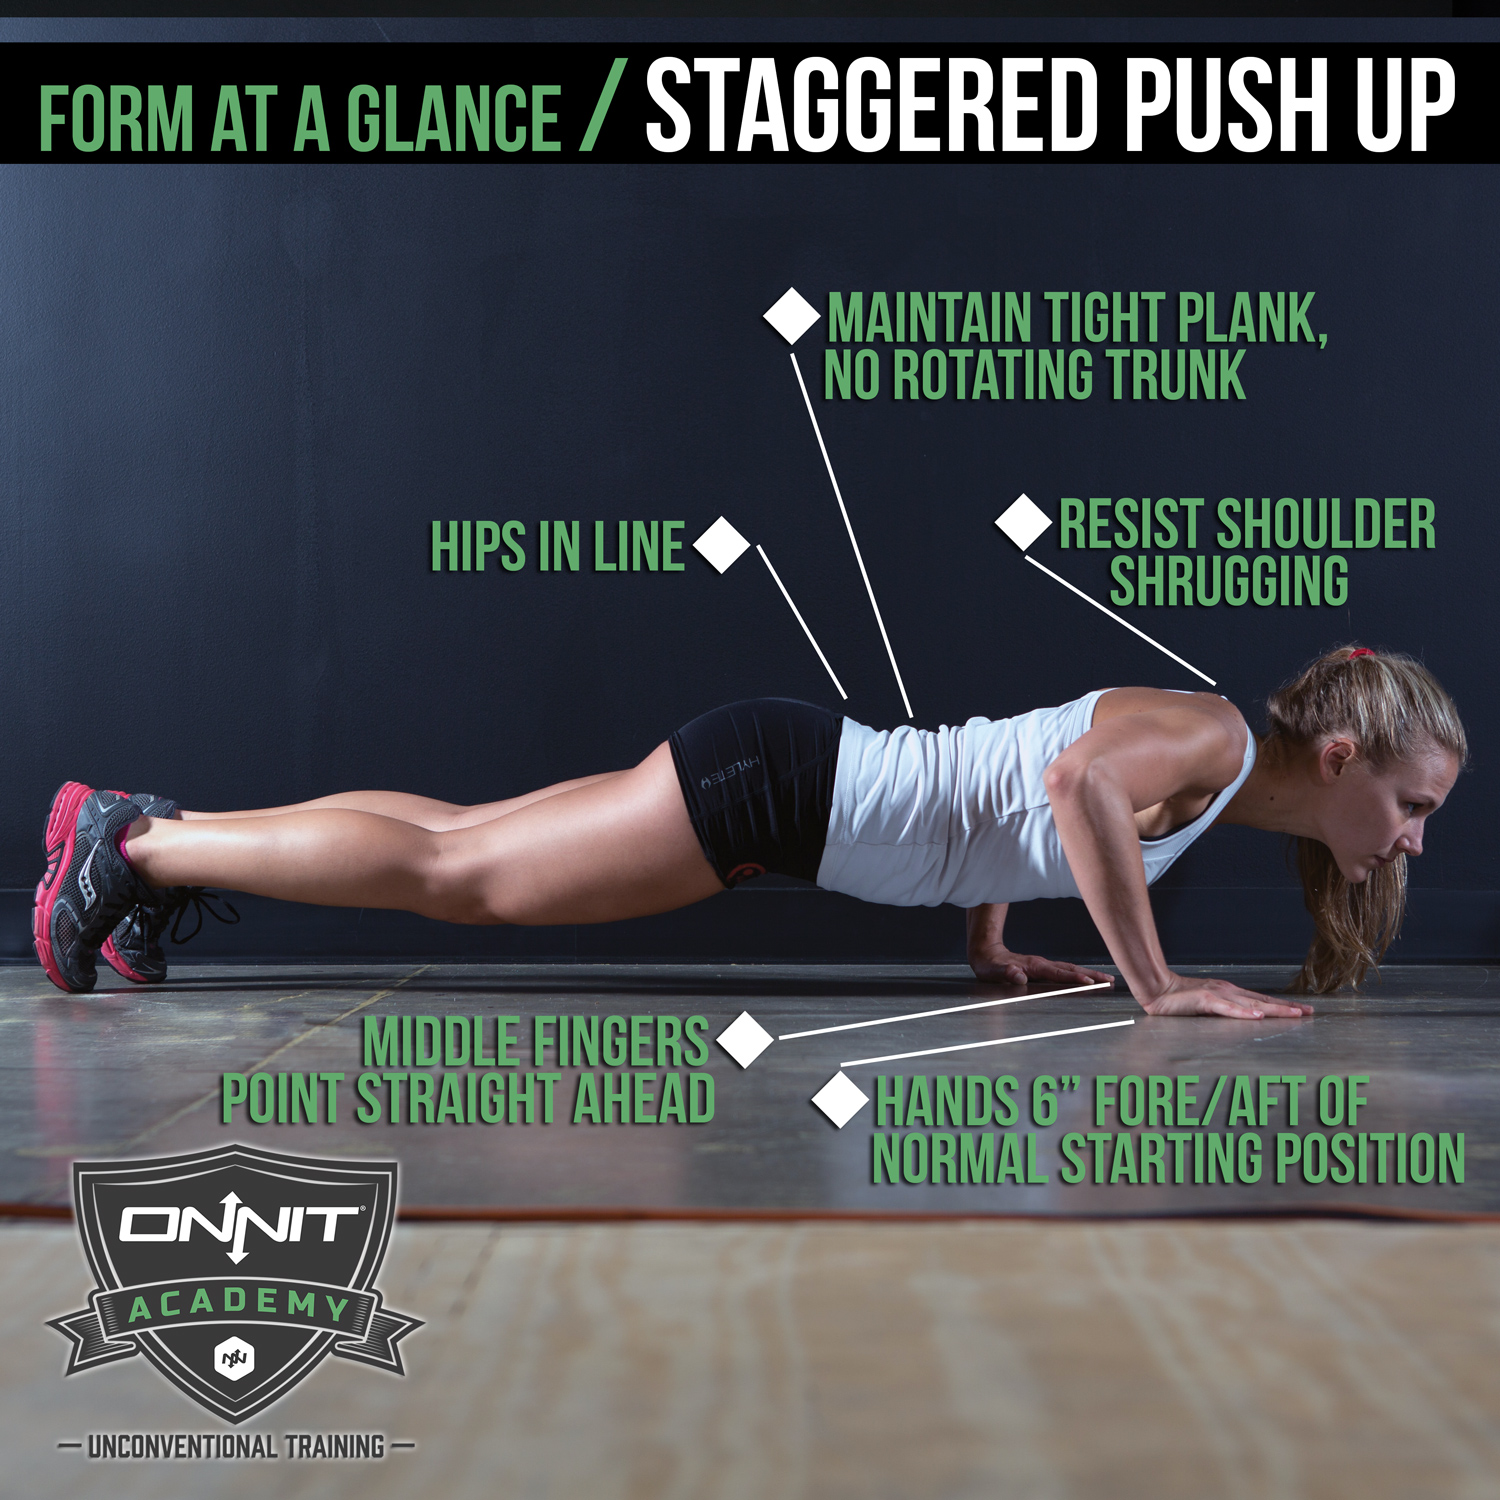 Form At A Glance: Staggered Push Ups